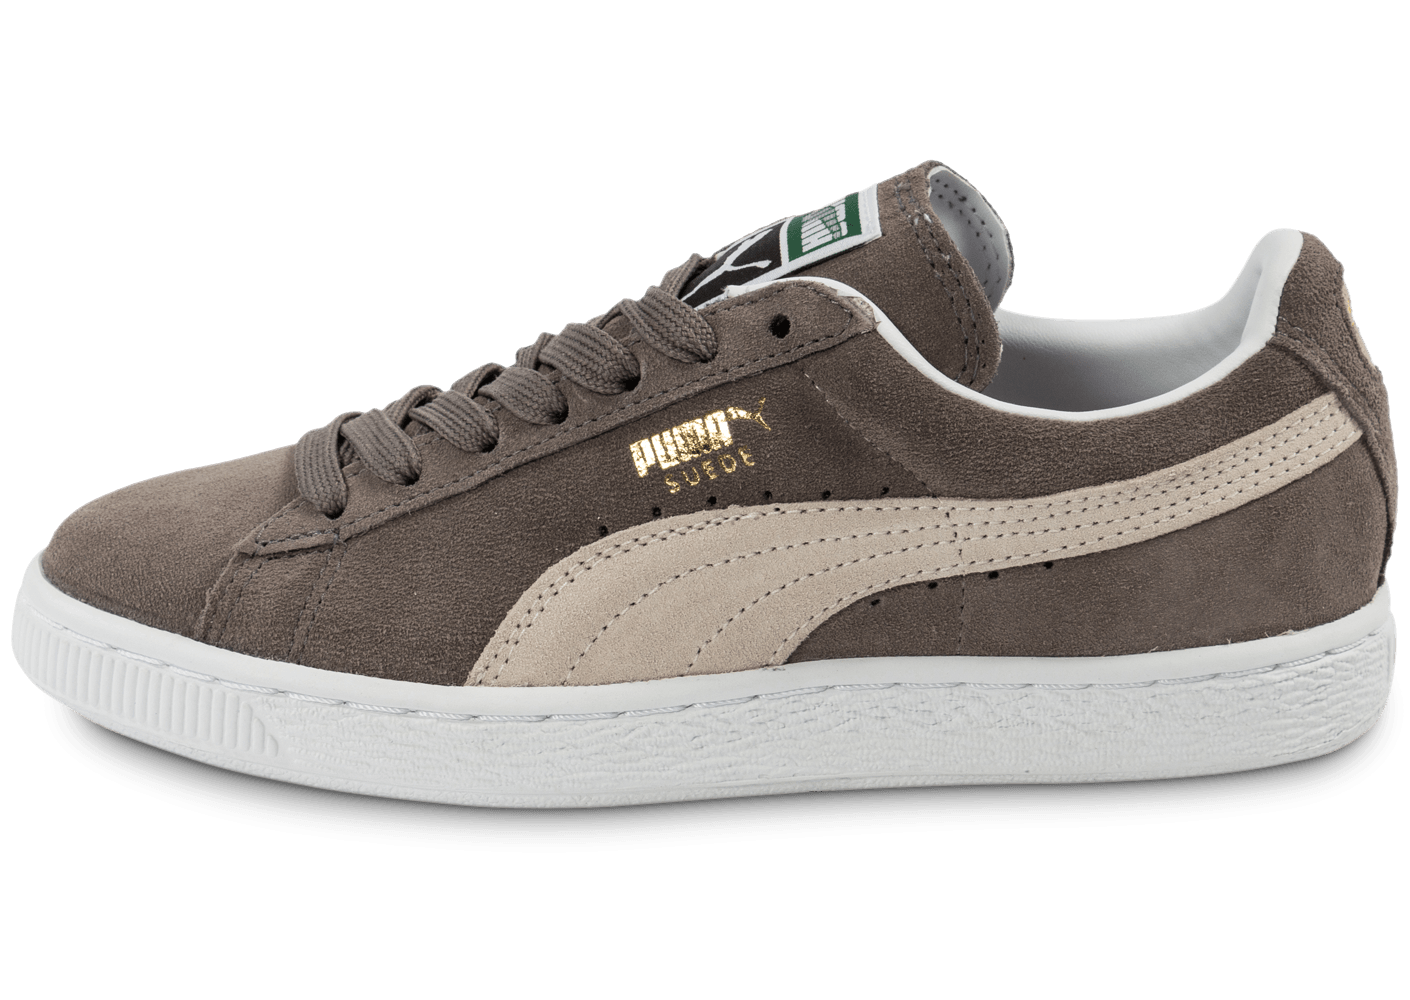 Chaussures Puma Fille 2017